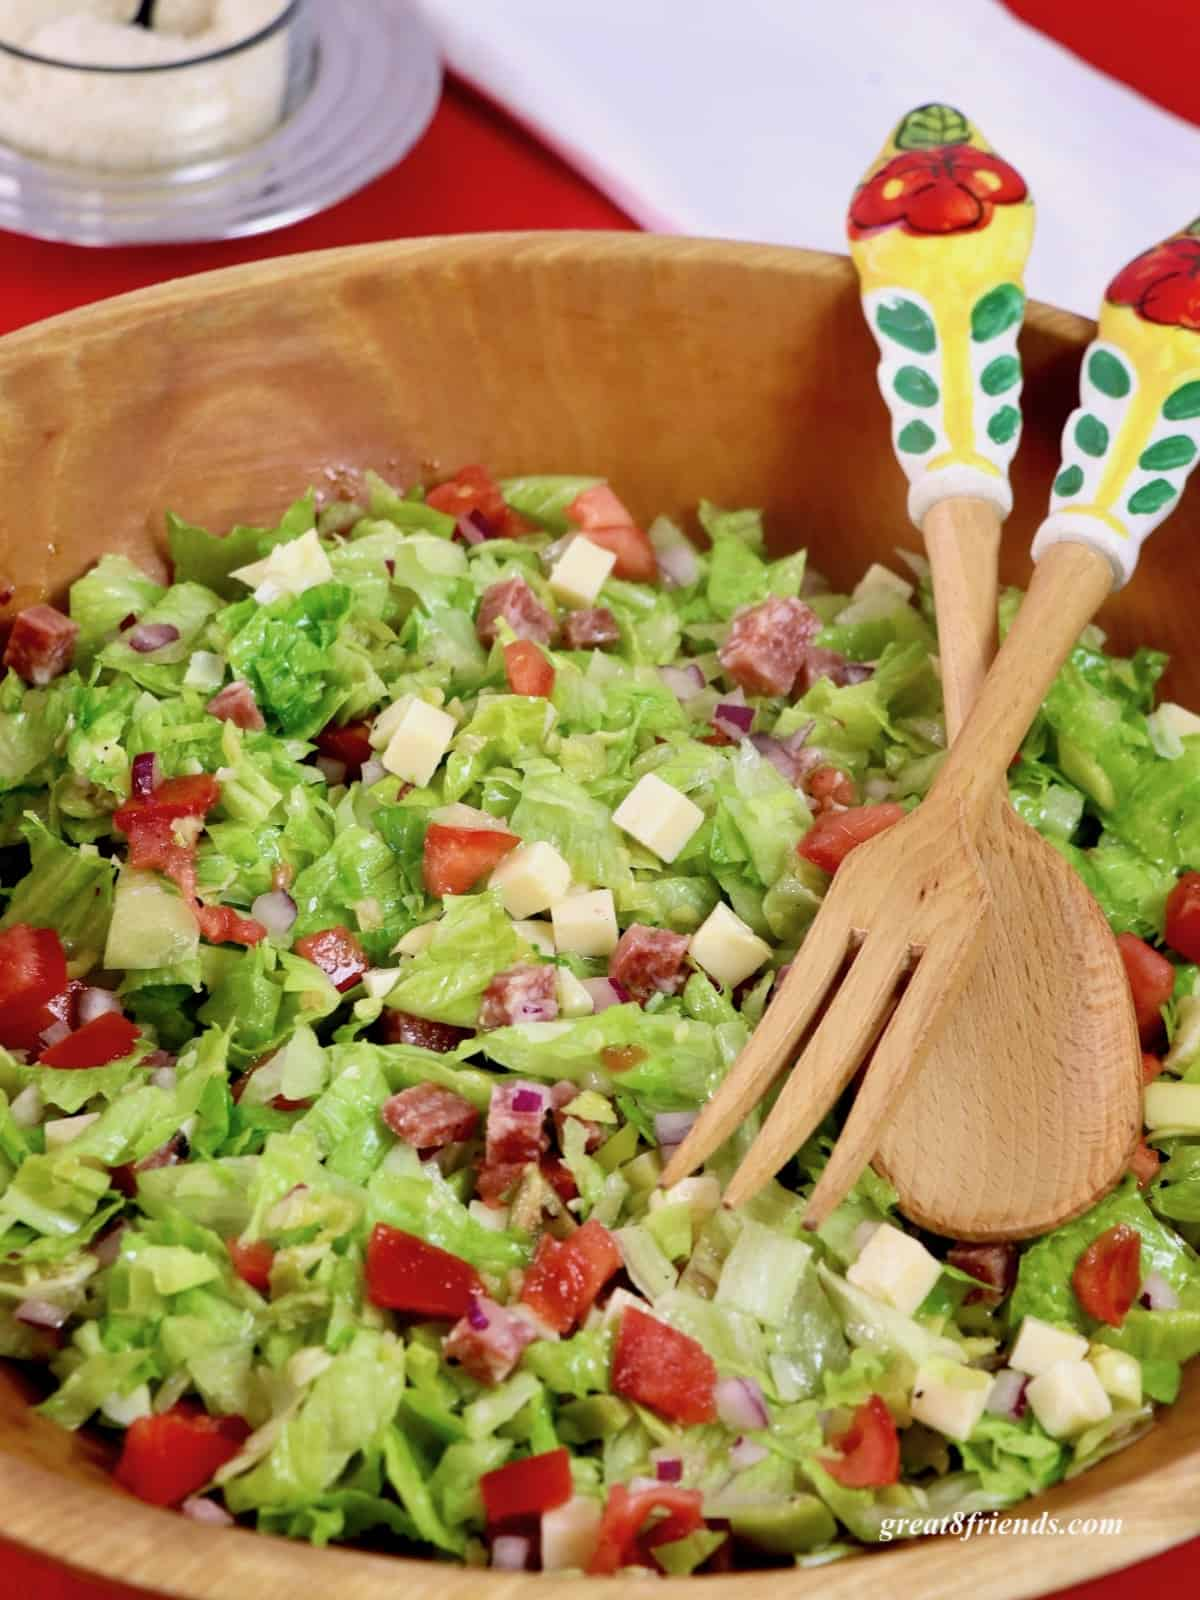 Italian Chopped Salad in a wooden bowl with salad servers.